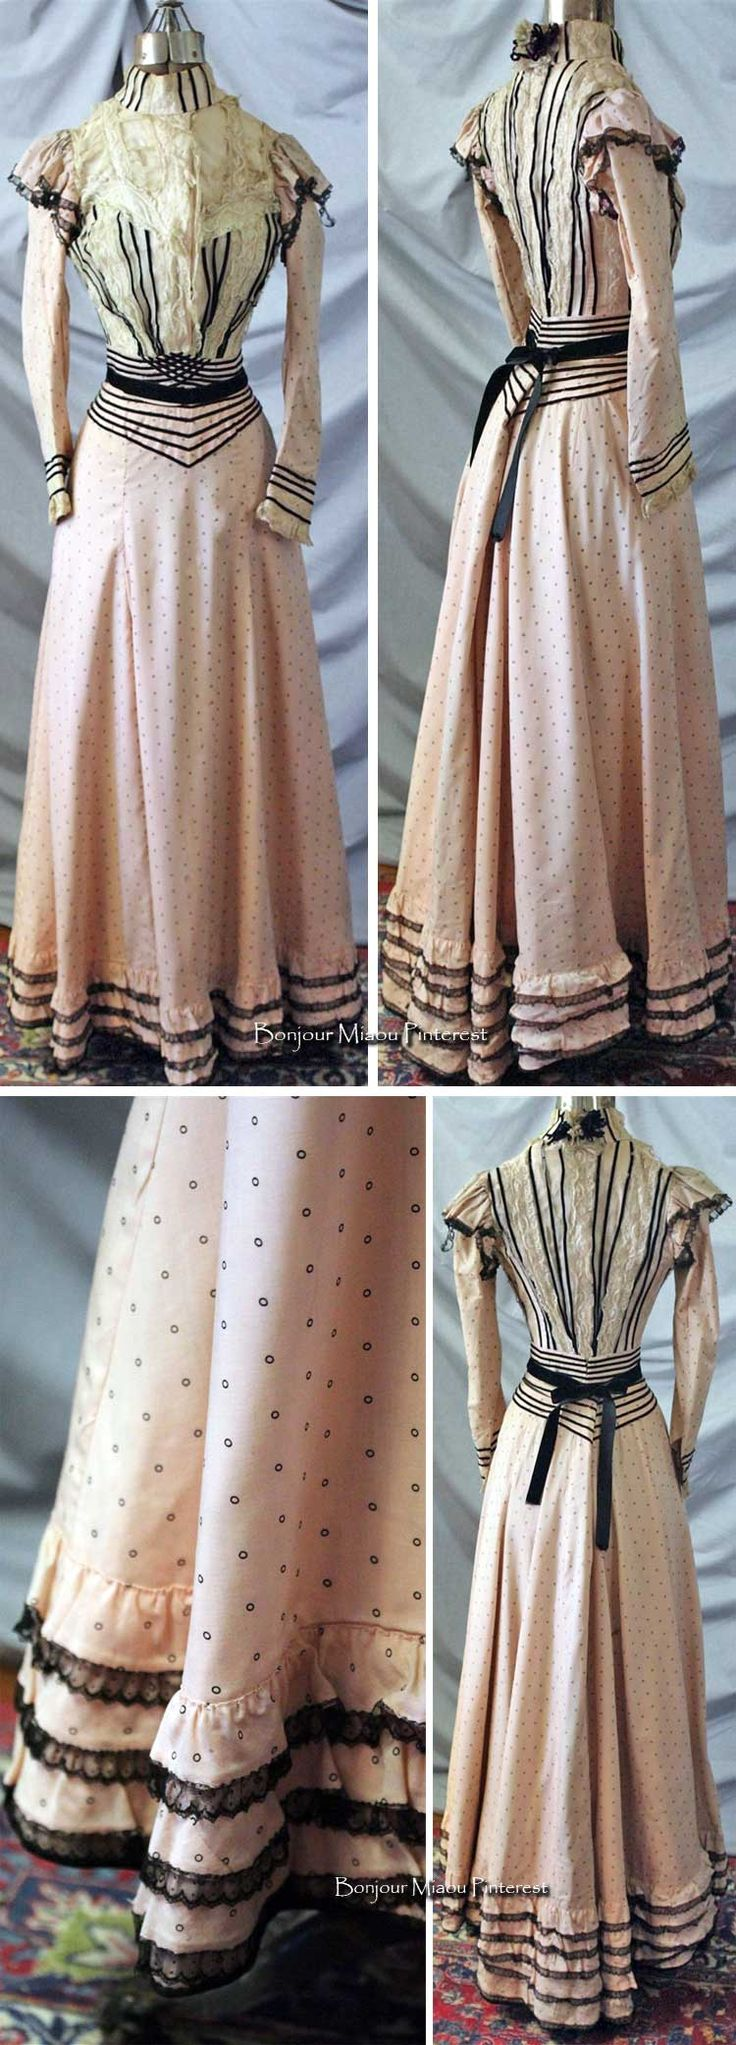 Afternoon dress ca. 1890s. Two pieces. Pale pink wool-cotton blend (?) with small black polka dots. Trimmed with Valenciennes and Chantilly lace and black silk velvet ribbon. rosietoesmac/eBay